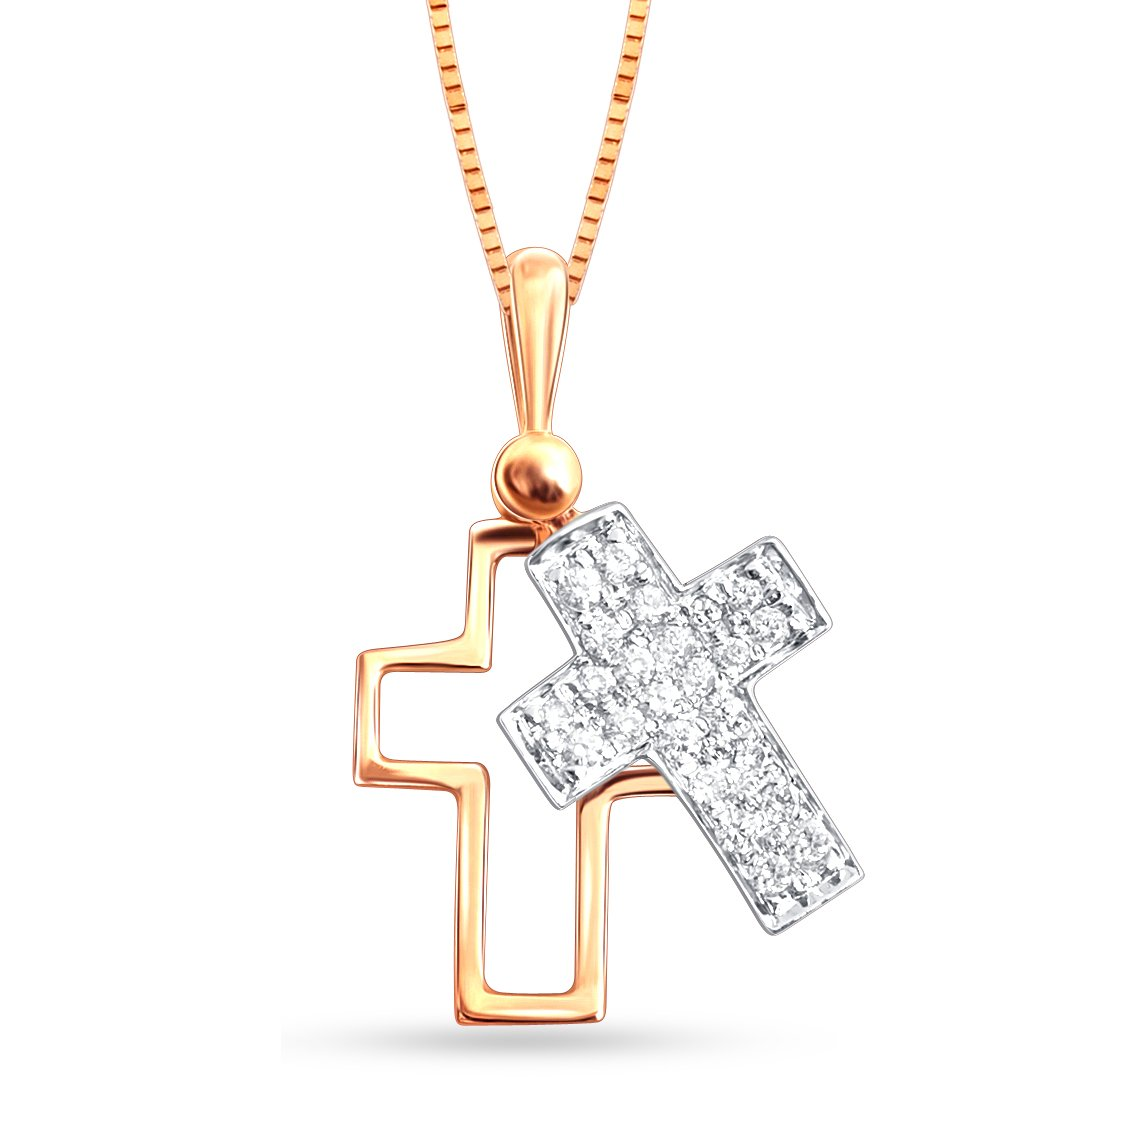 Christmas Gift, God, Almighty, Cross, Jewel Ivy 14k Gold Cross Pendant with Diamond